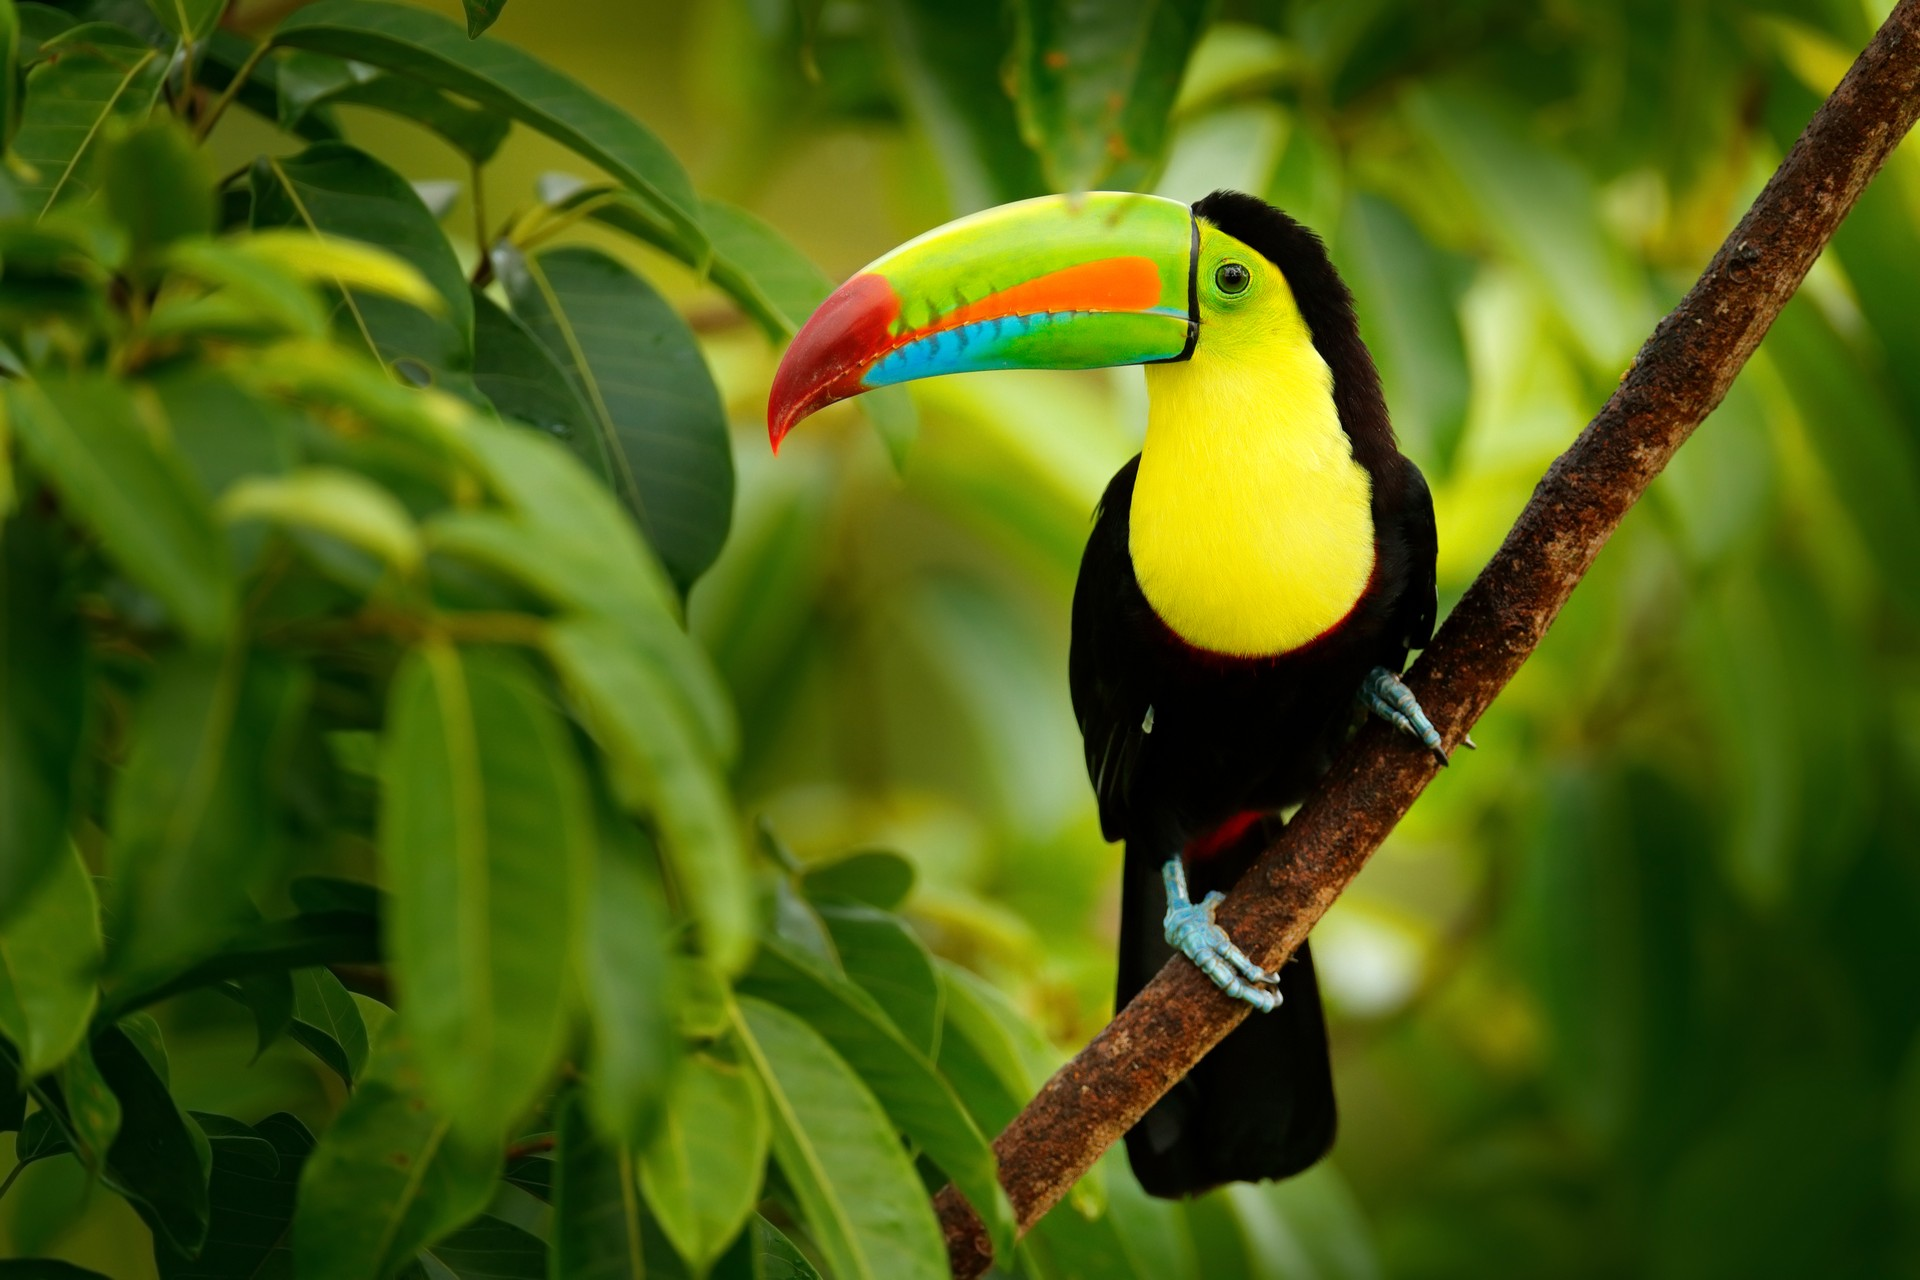 The National Parks of Costa Rica: Keel-billed Toucan